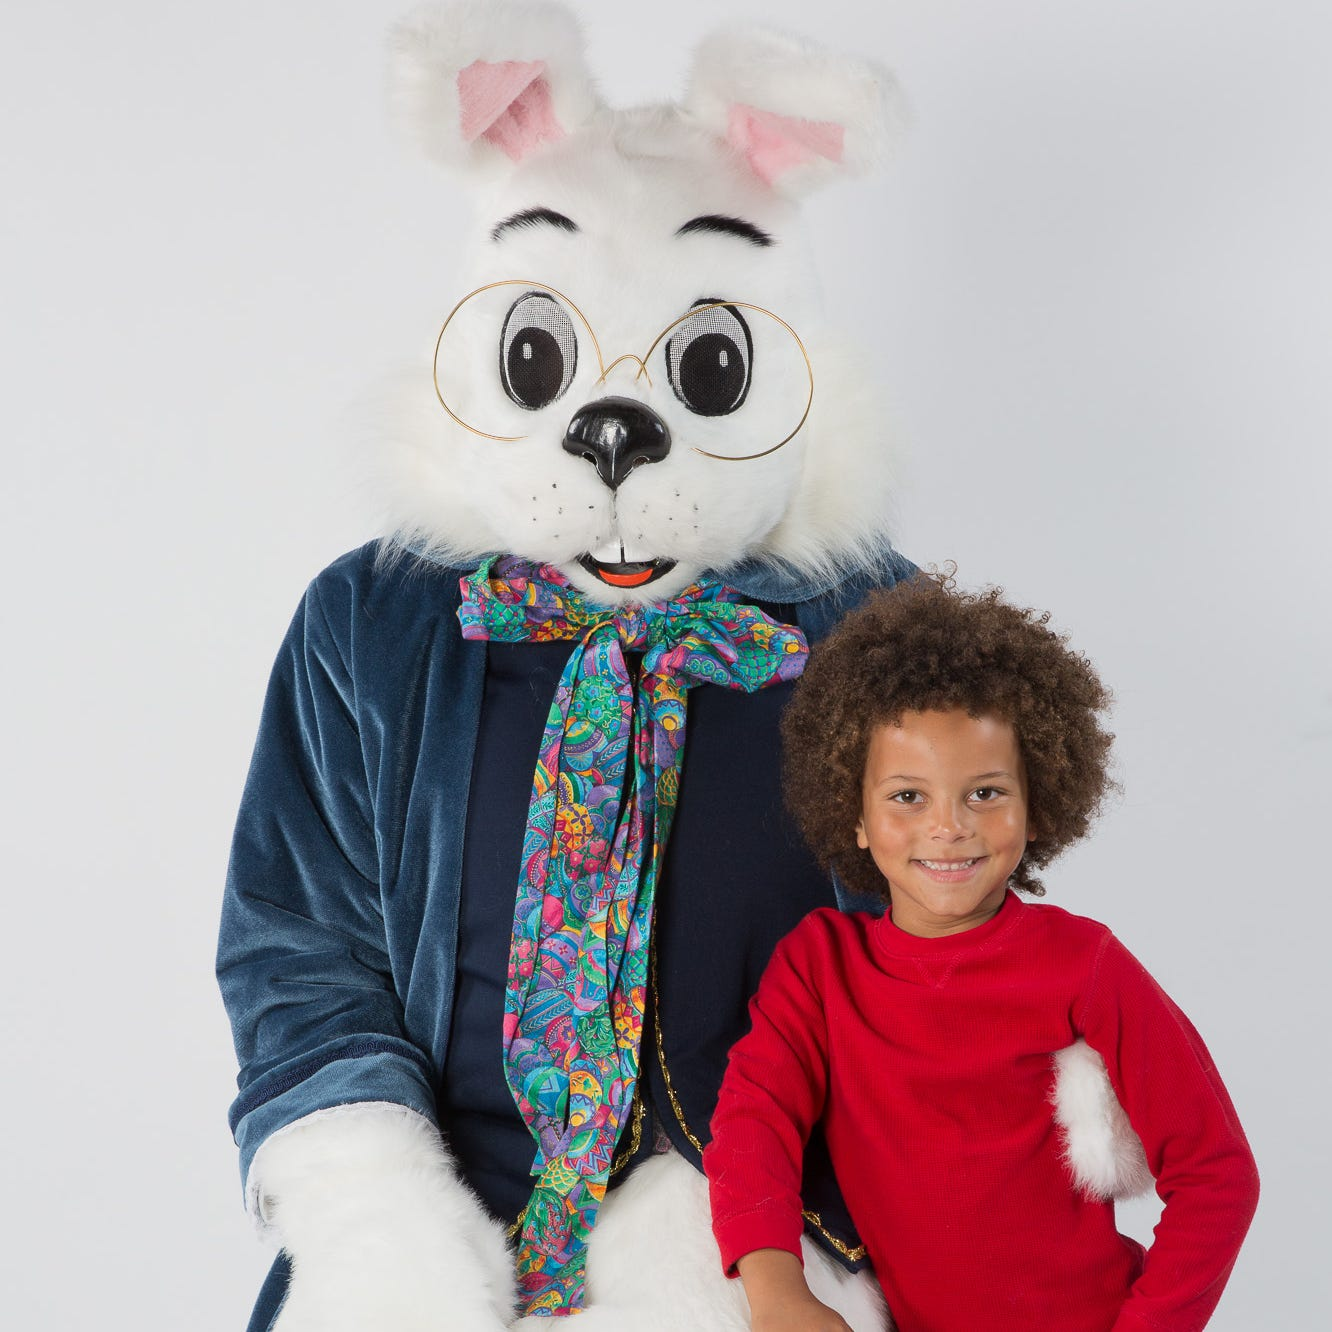 Where to find Easter Bunny in El Paso and Las Cruces for family photos